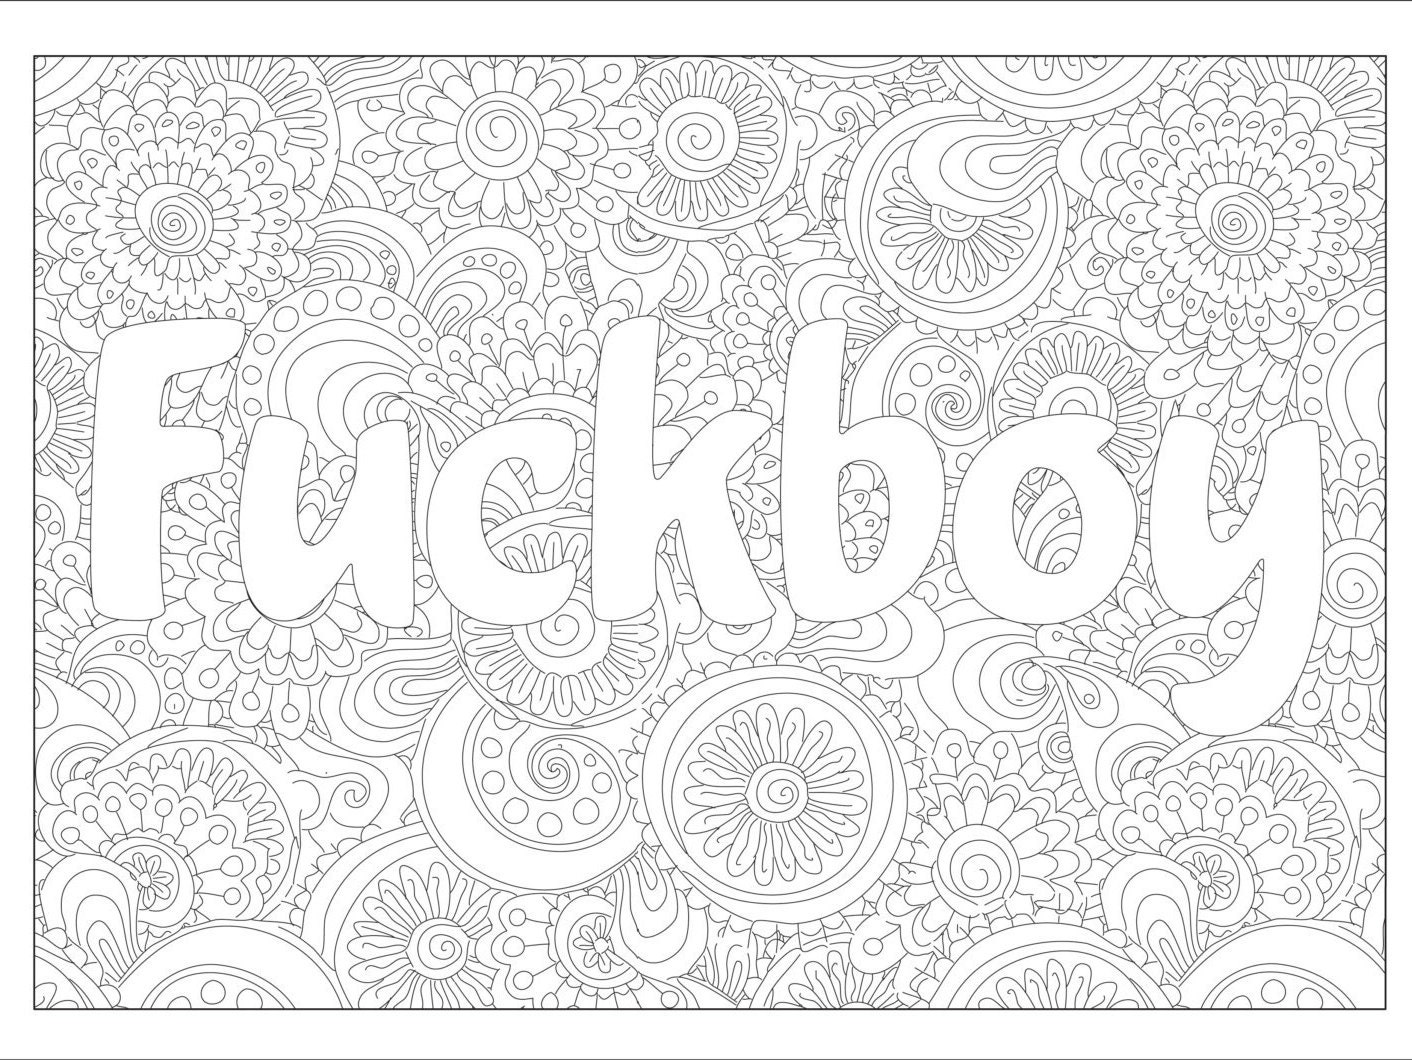 Swear coloring page Fuckboy with flower ornaments.